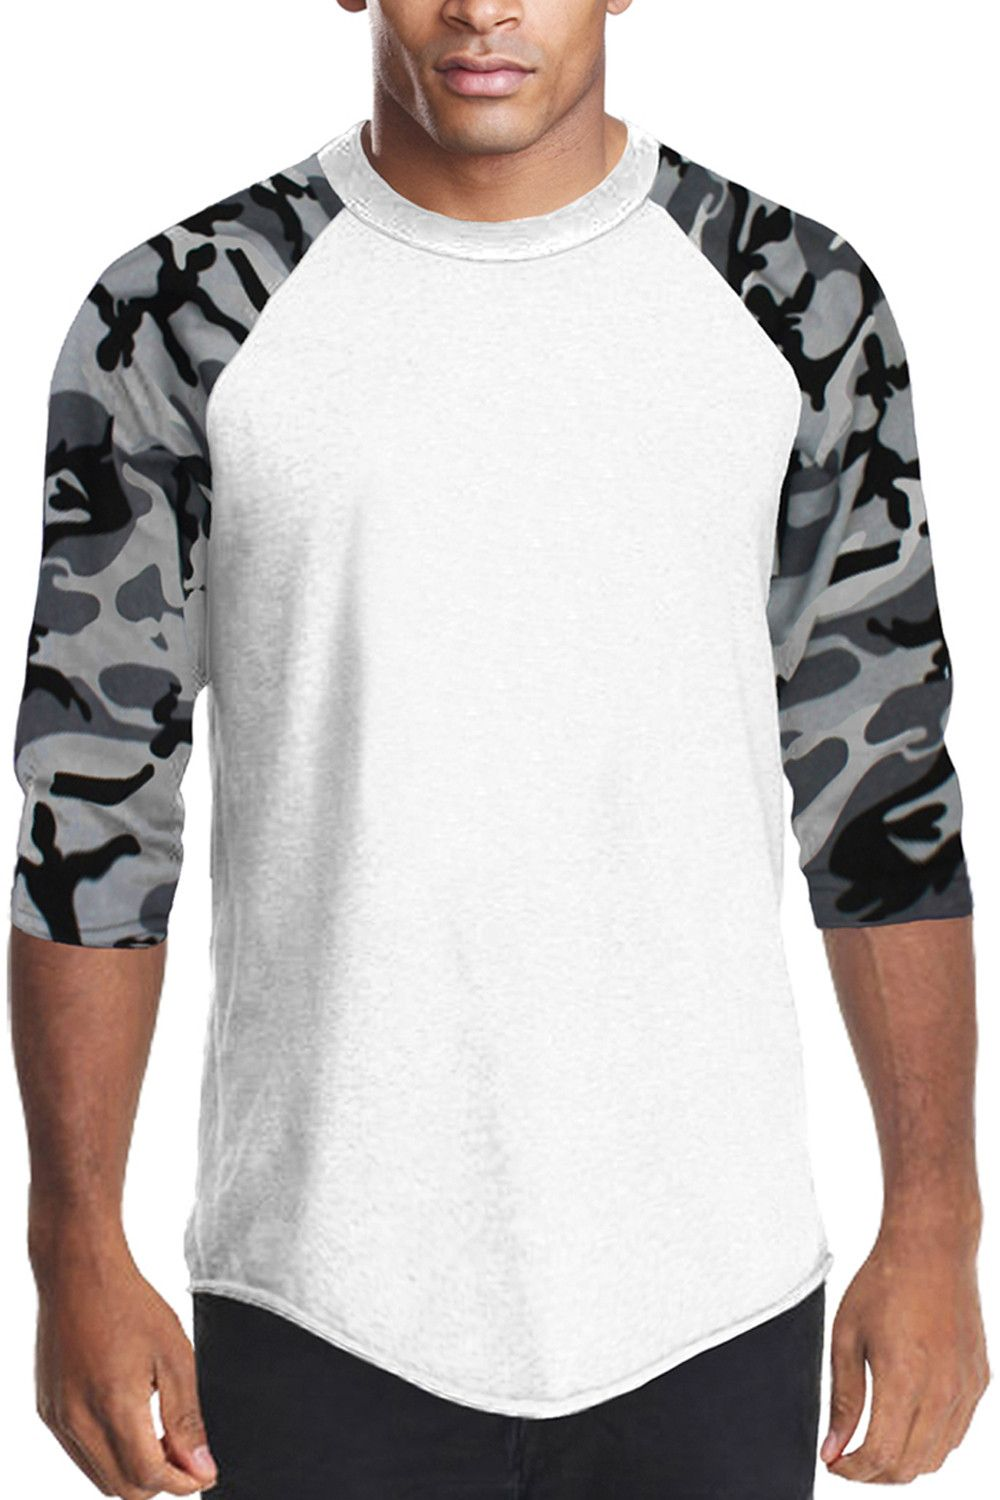 2585b1c5 Raglan Sleeve Baseball T-shirt Camo Mens Top Sports – Pro 5 Apparel